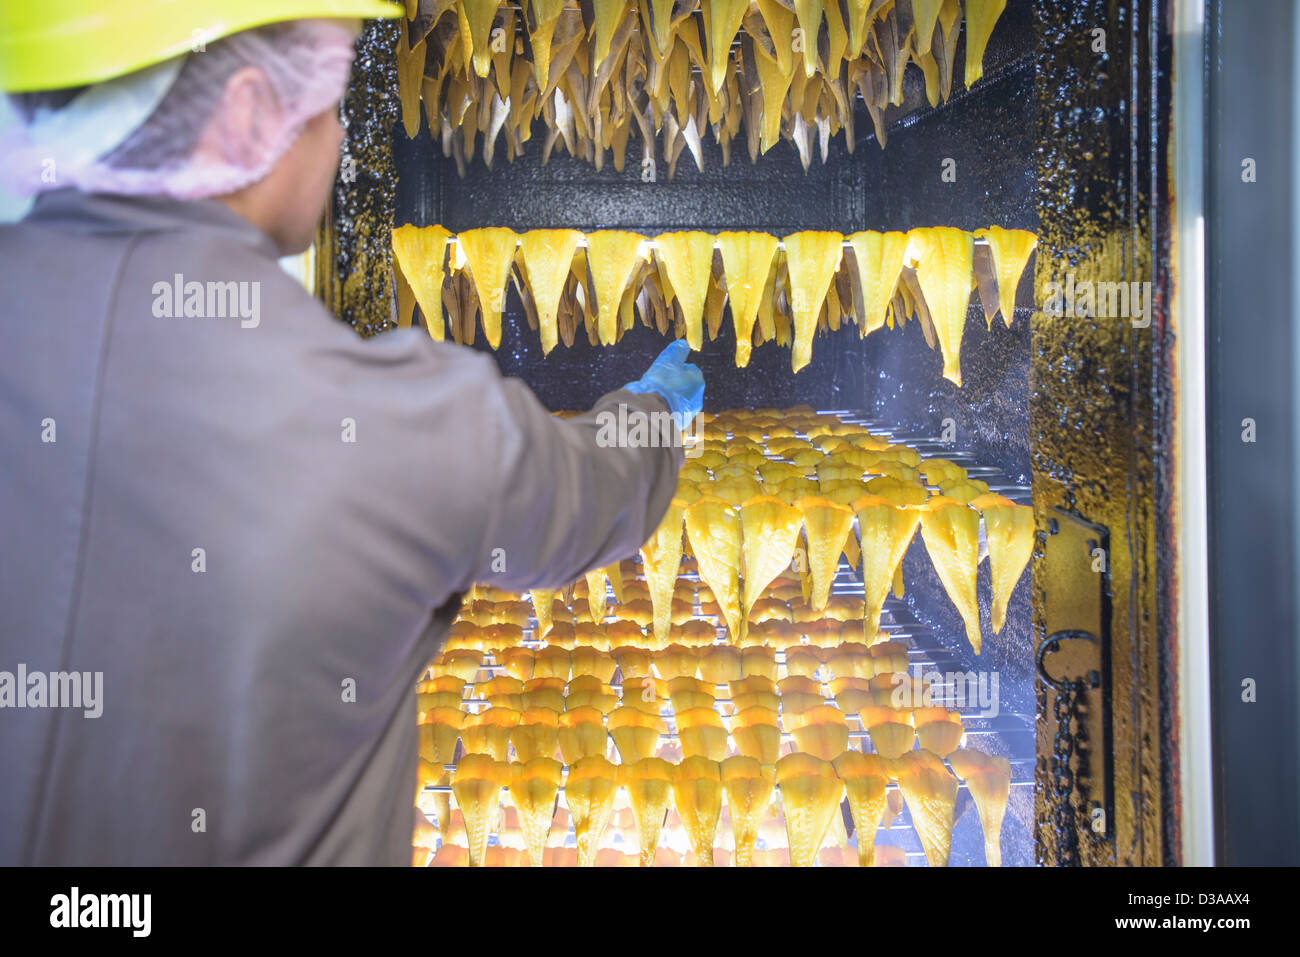 Worker inspecting smoked haddock fillets in food factory - Stock Image